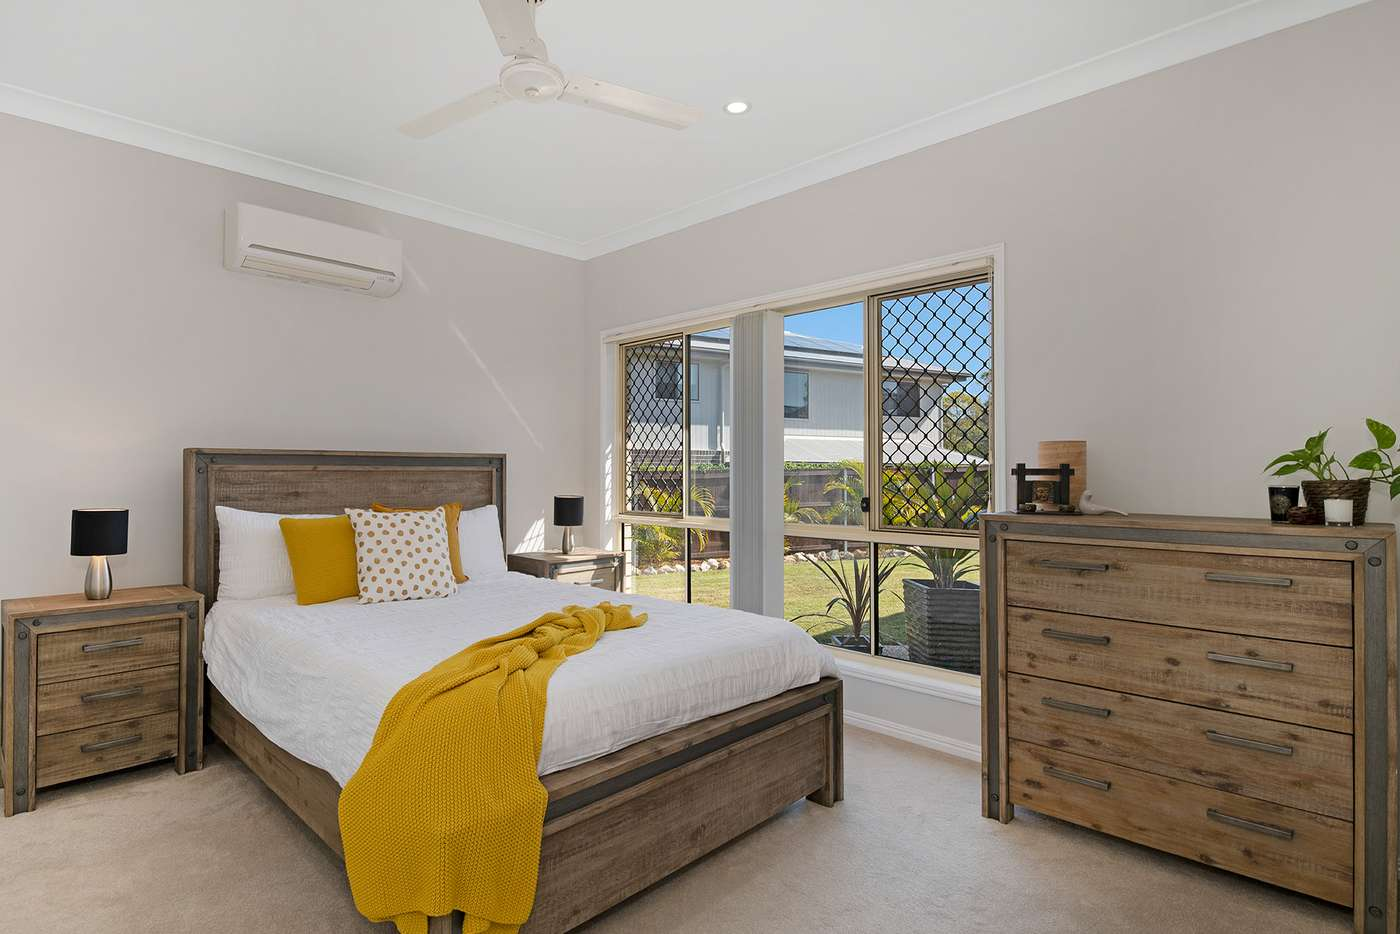 Sixth view of Homely house listing, 8 Turrbal Street, Bellbowrie QLD 4070